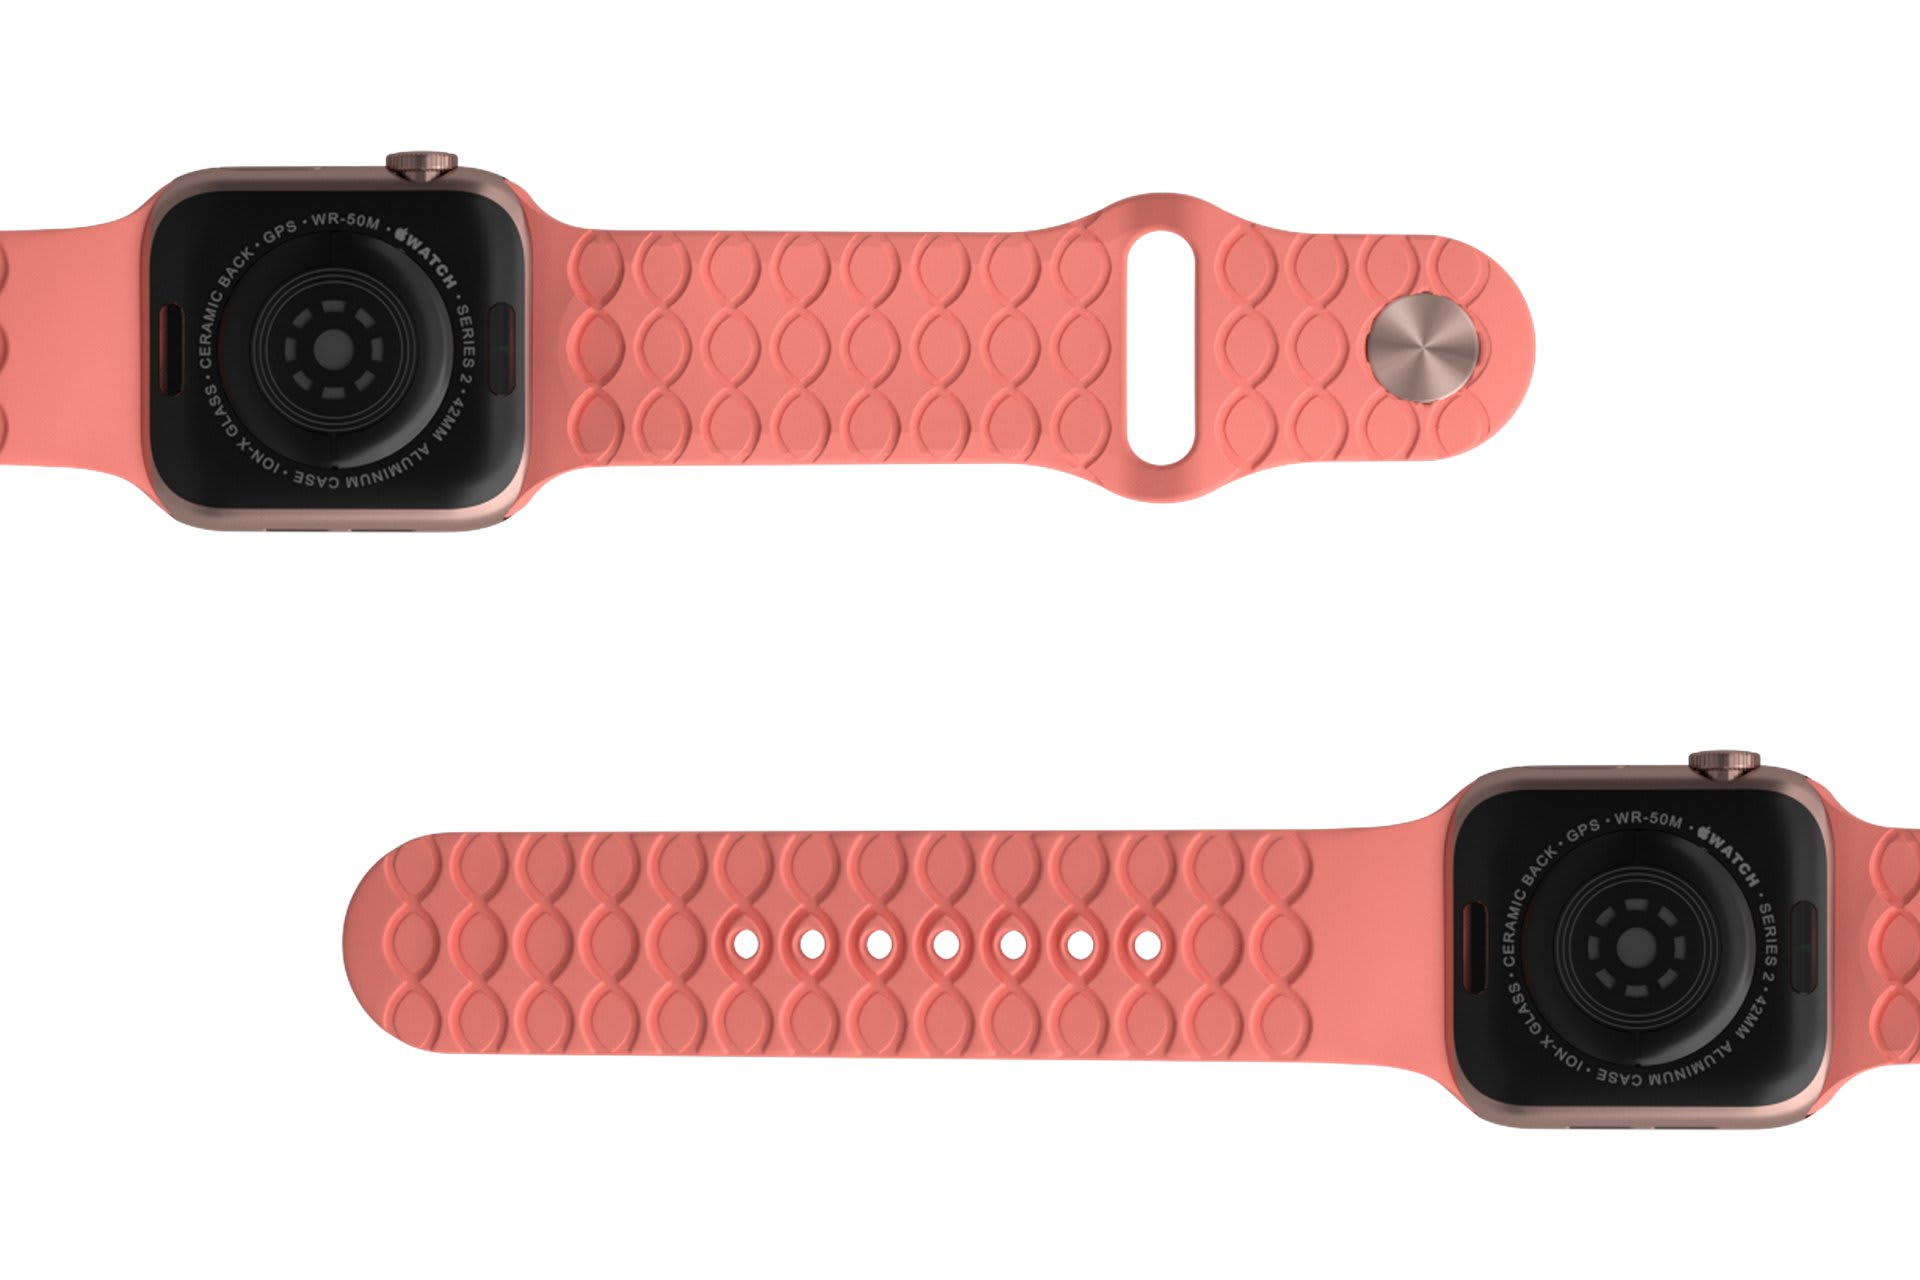 Solid Coral Apple watch band with rose gold hardware viewed bottom up